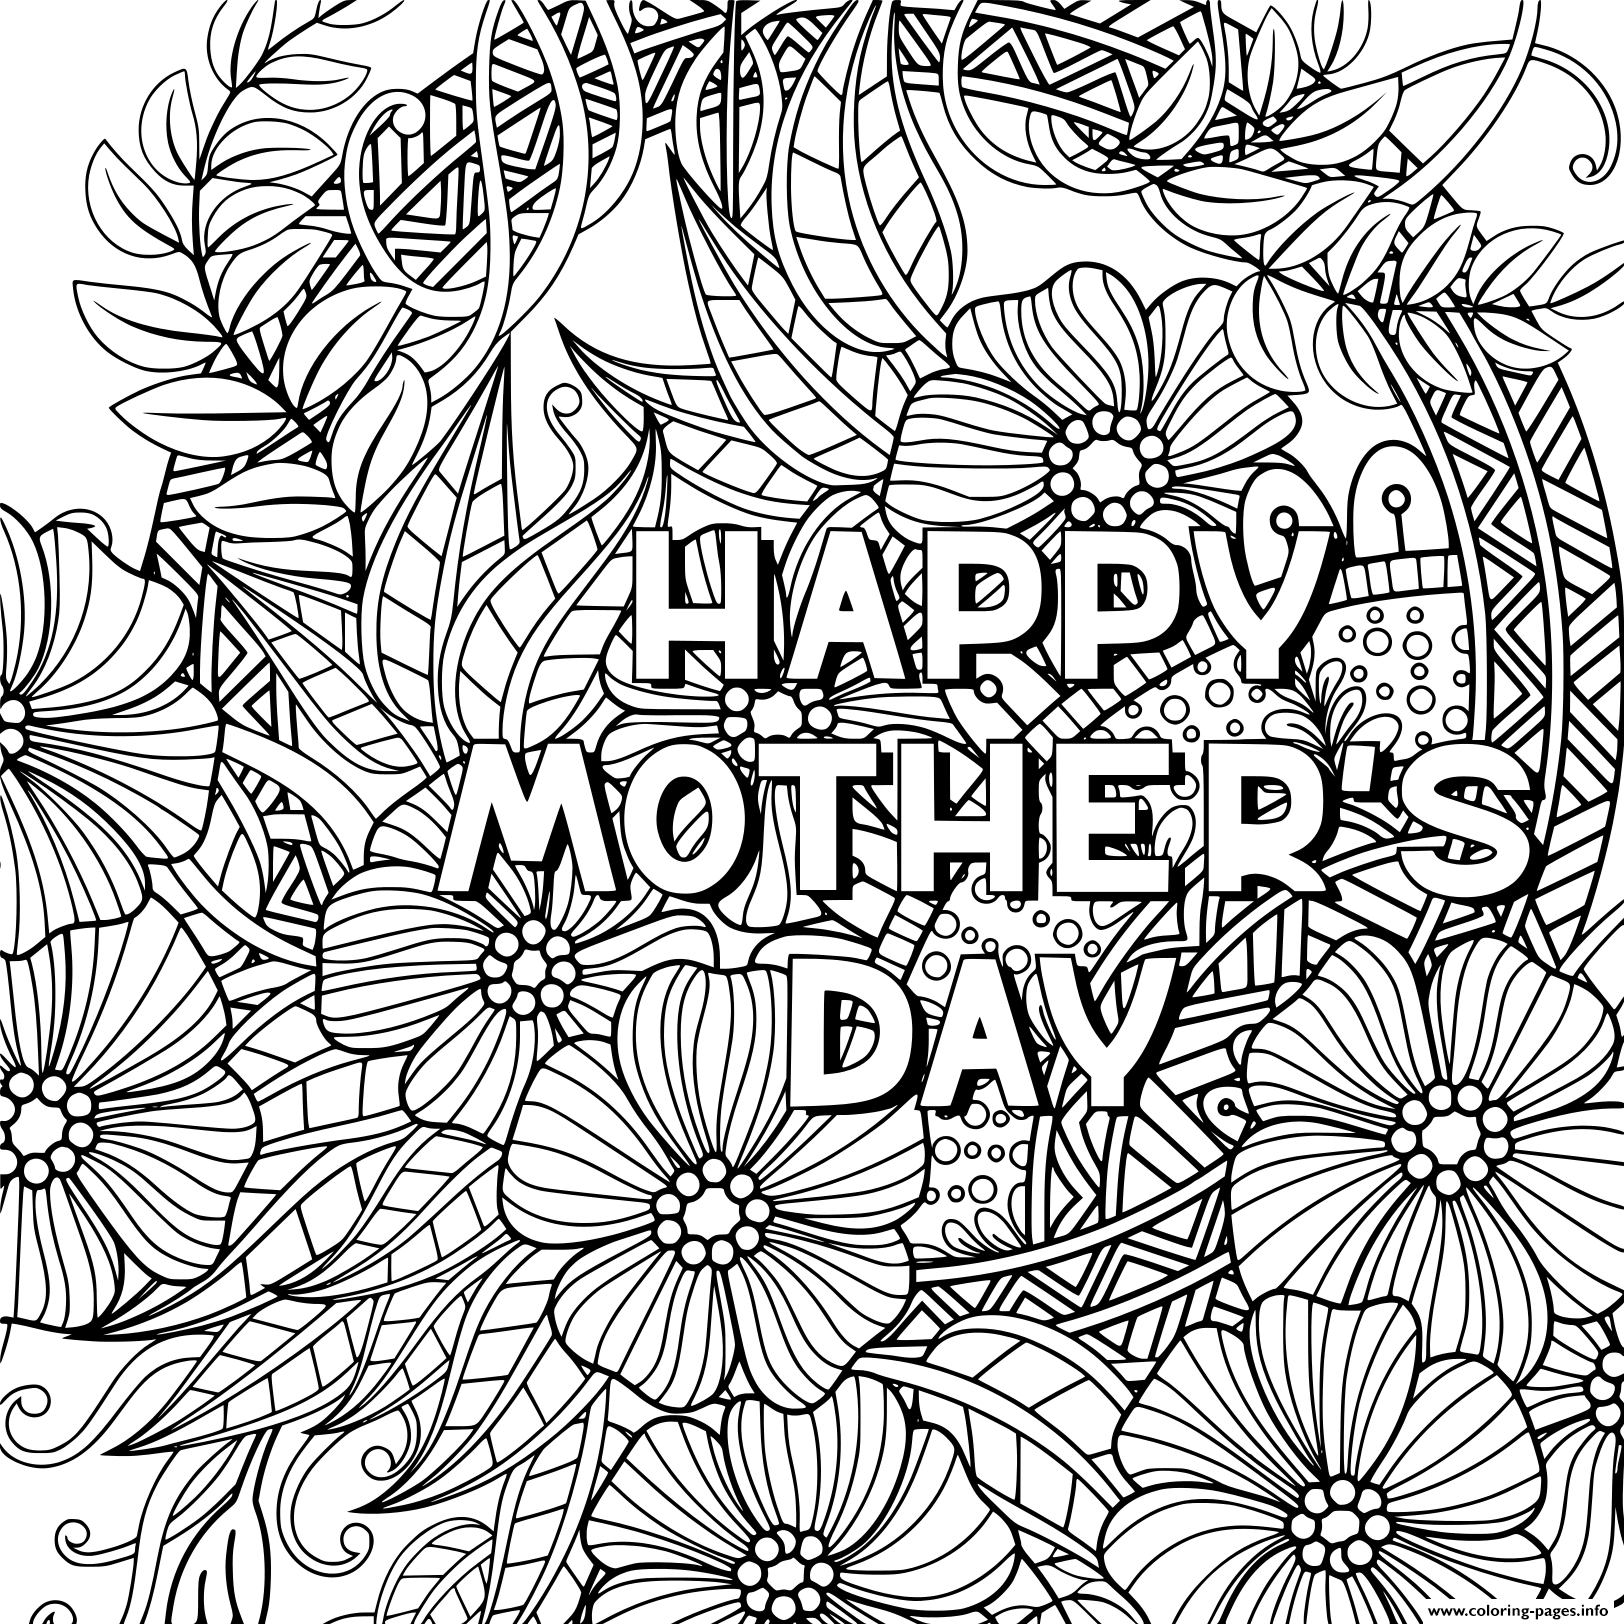 photograph about Mothers Day Coloring Pages Printable named Pleased Moms Working day For Grownup Zentangle Coloring Web pages Printable